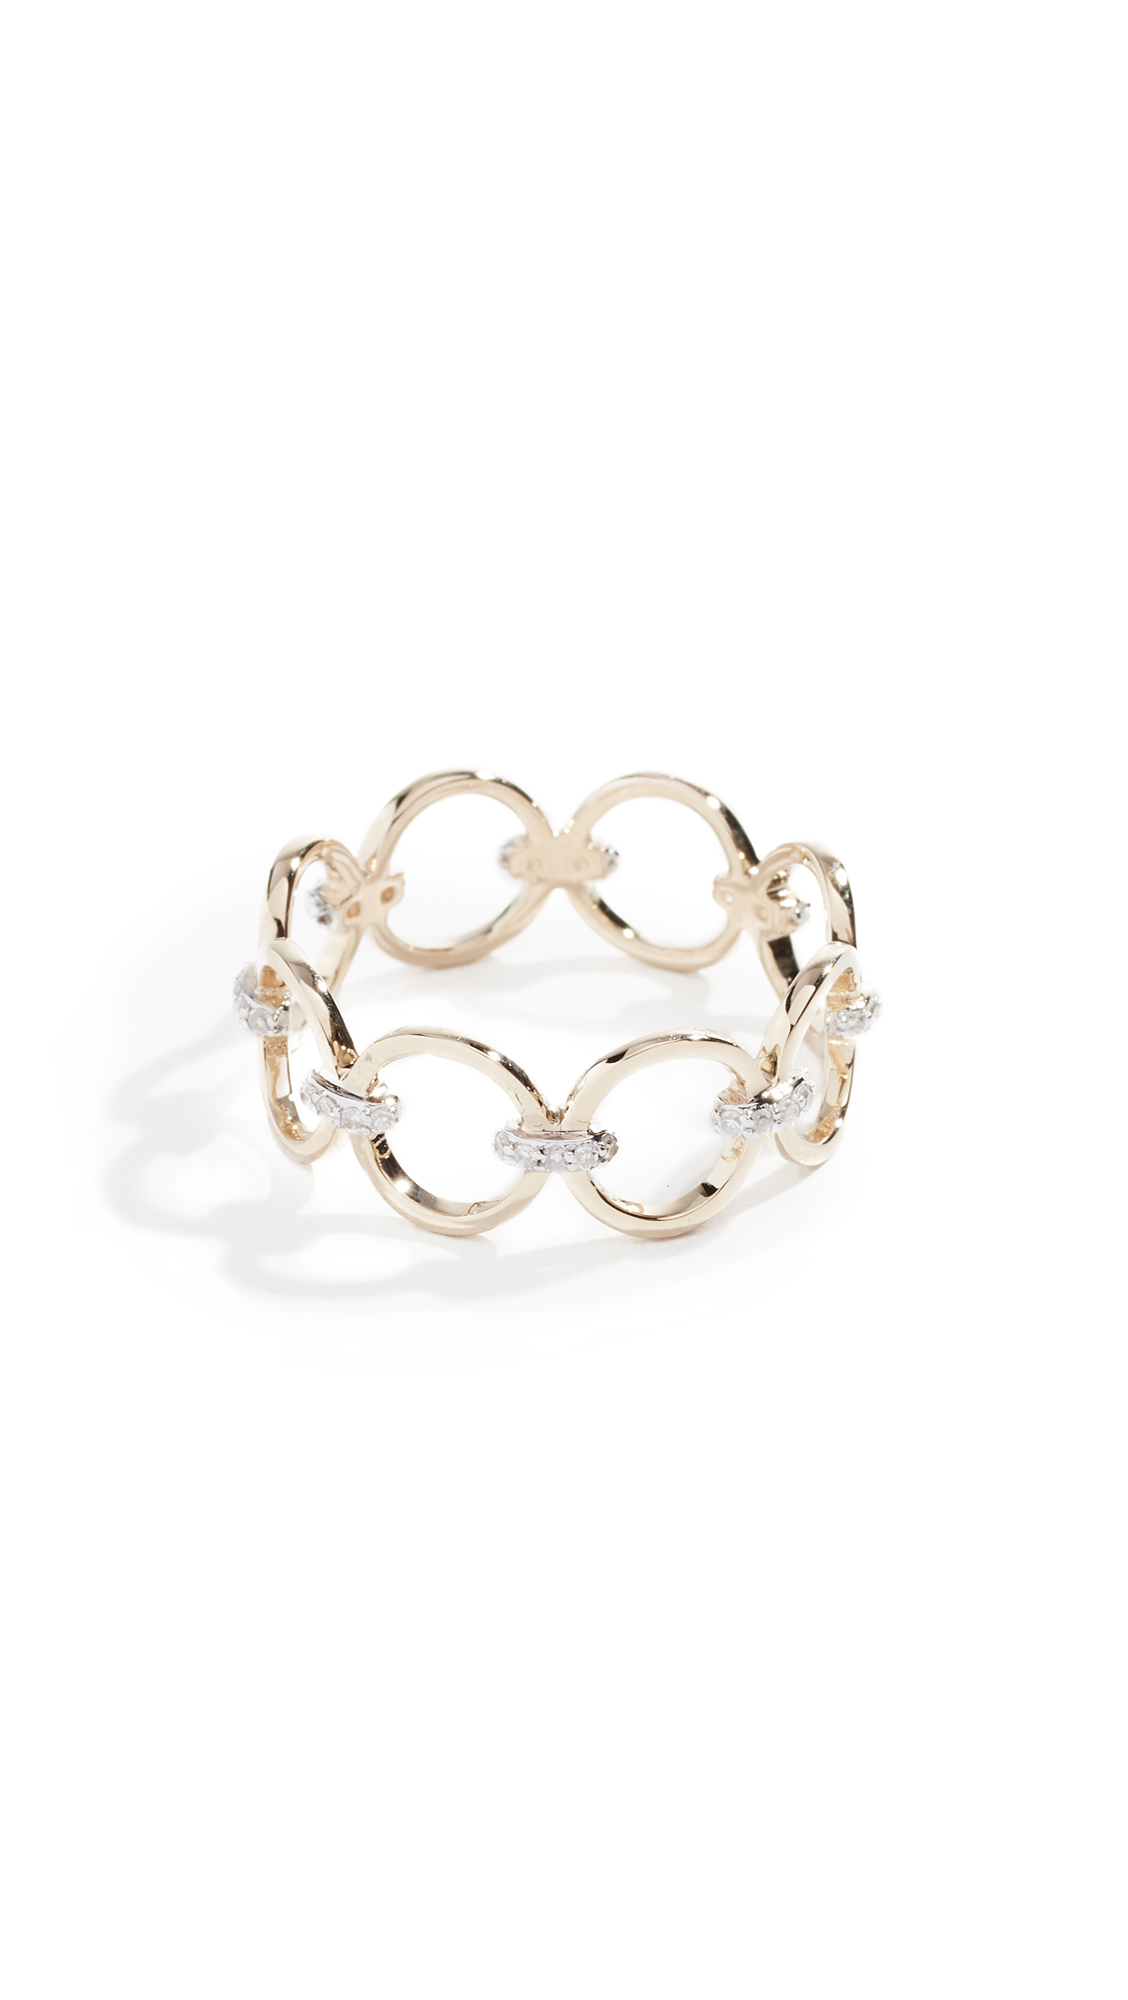 MATEO 14K Connecting Circle Ring With Diamonds in Yellow Gold